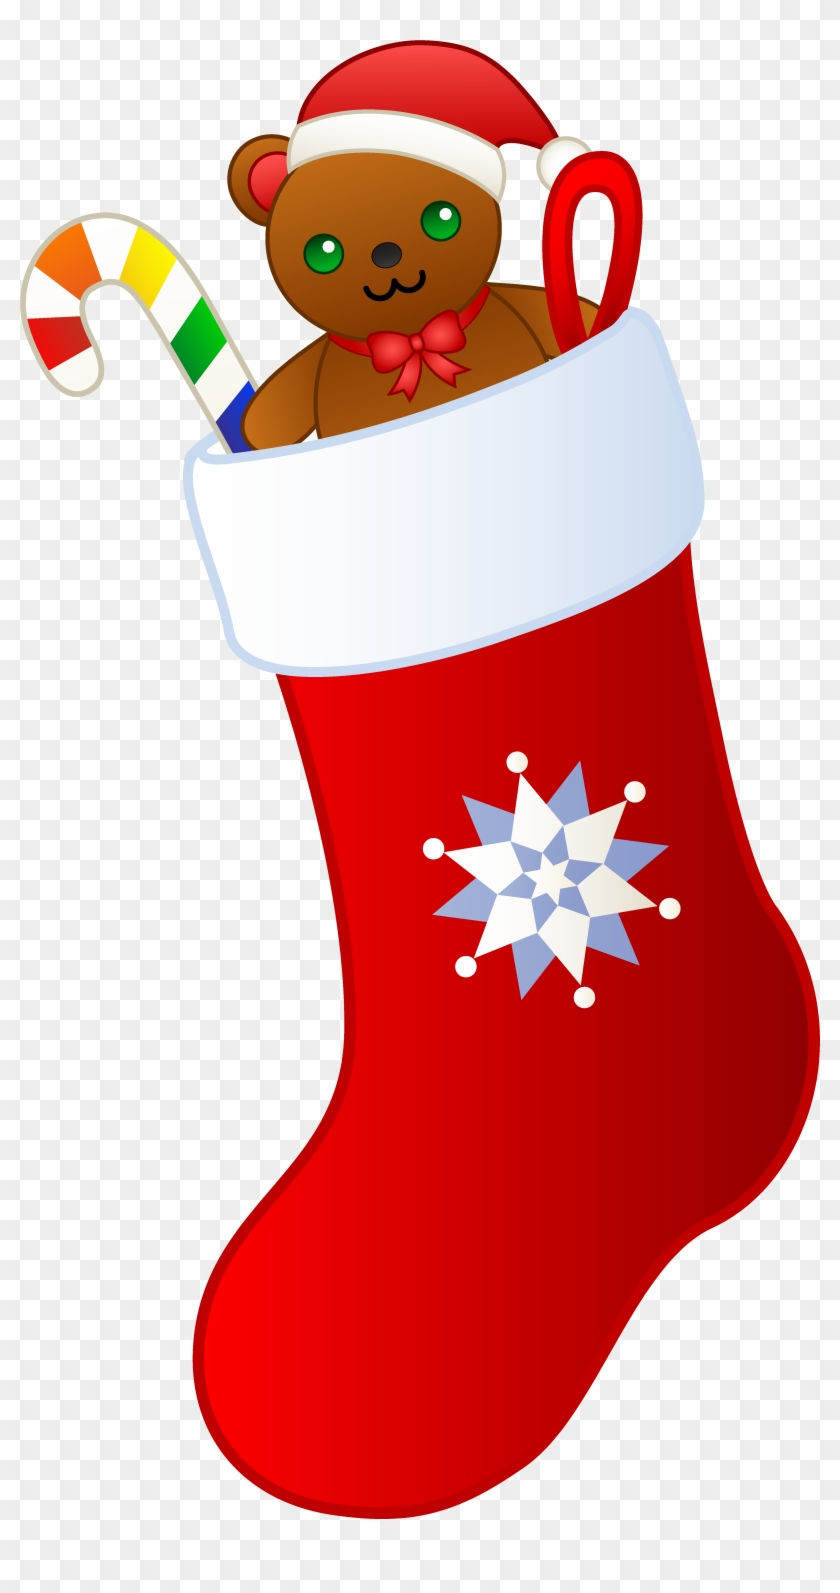 Clipart Of Christmas Socks Cliparts Free Download Clip - Christmas Clip Art Stocking #30149